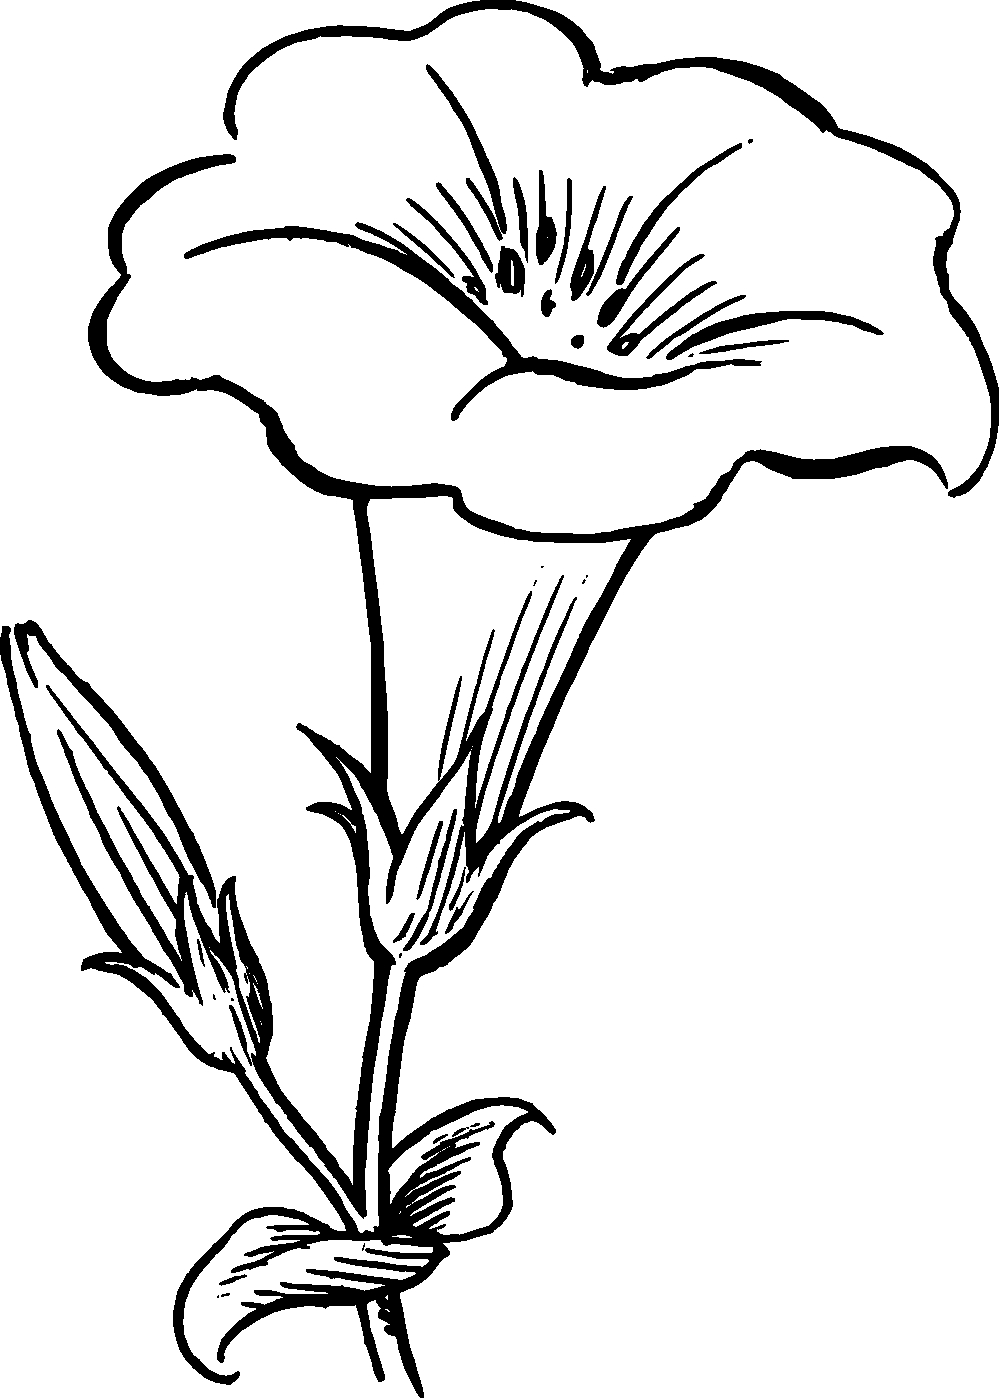 Eletragesi Daffodil Clipart Black and White Gallery Of New Daffodil Flower Coloring Pages Collection Printable